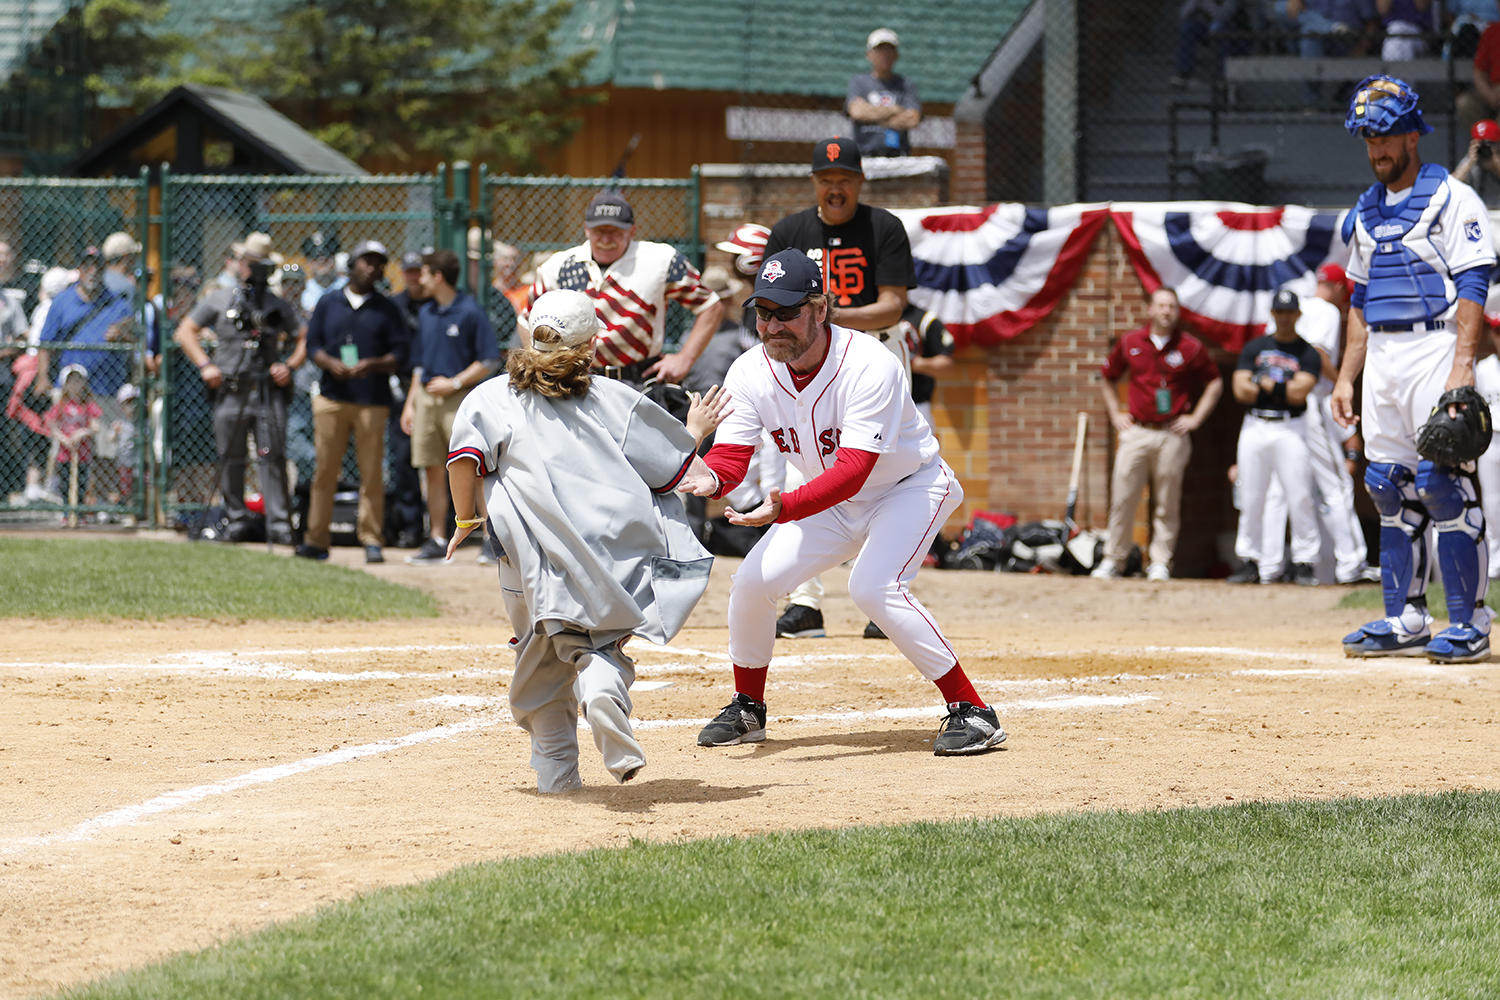 Hall of Famer Wade Boggs welcomes home a runner during a between-innings contest at the Hall of Fame Classic. (Milo Stewart Jr./National Baseball Hall of Fame and Museum)